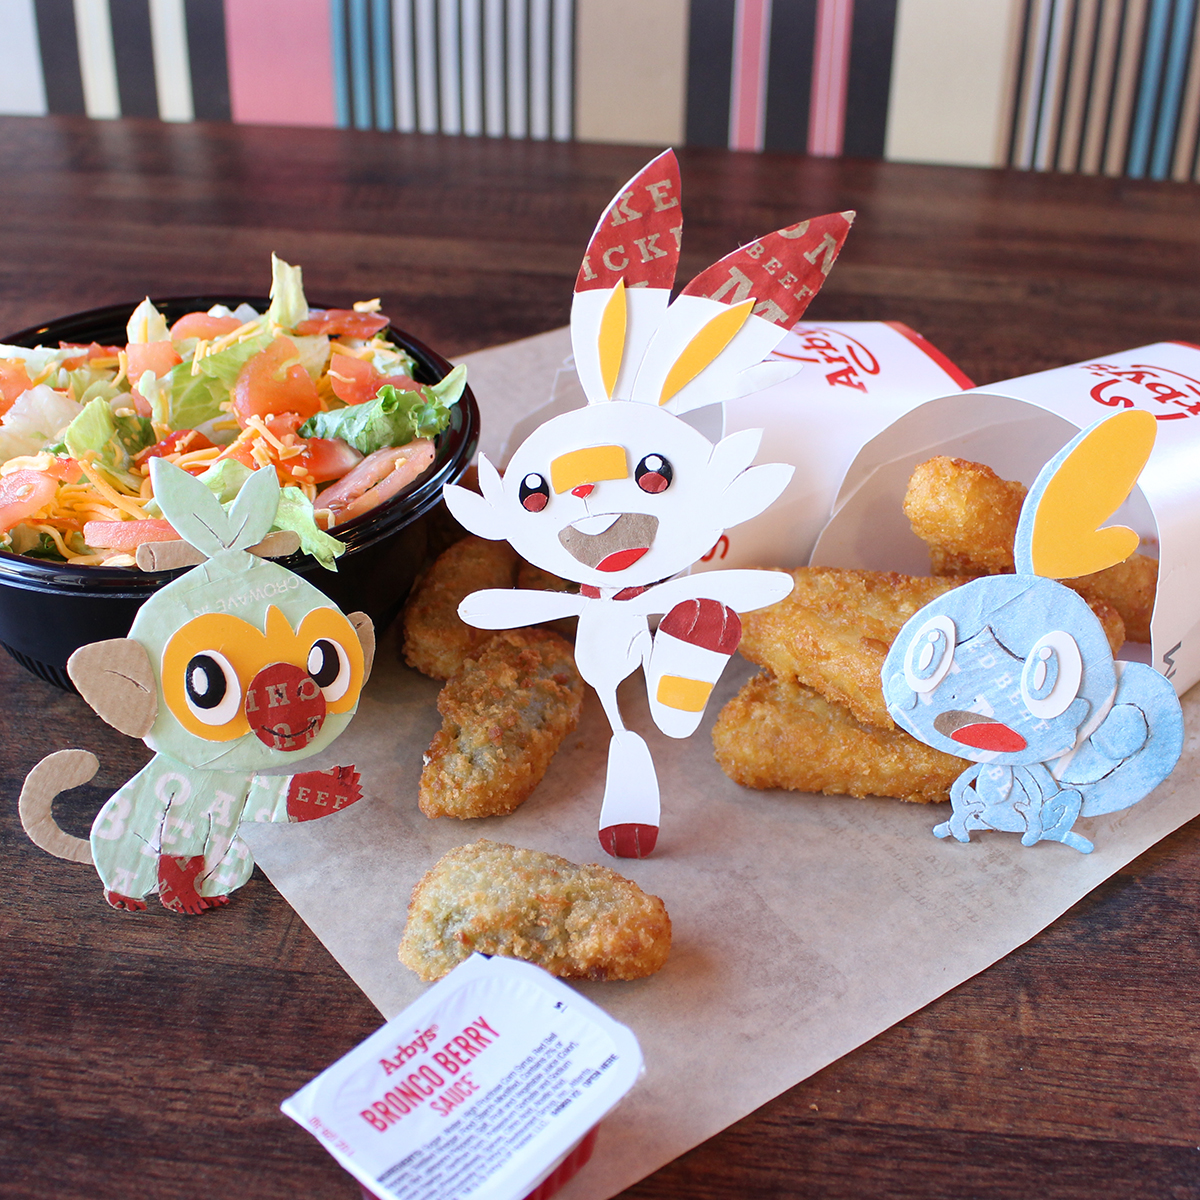 Companies celebrate the release of 'Pokemon Sword and Shield' (Atlus, Bethesda, Arby's, Hulu, & more)